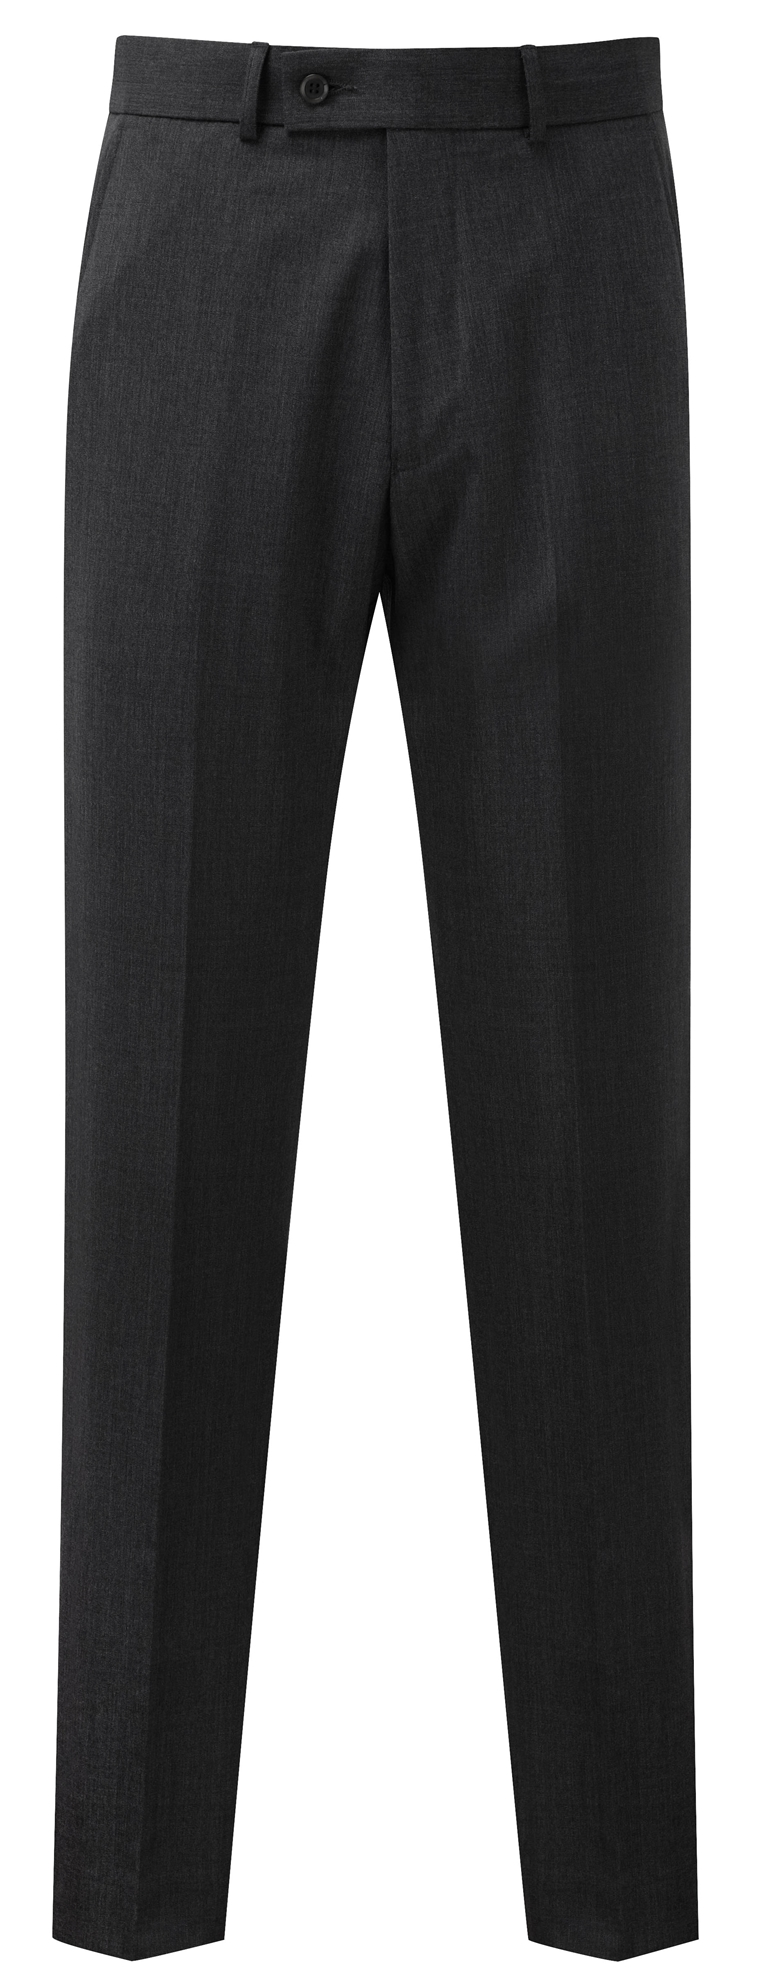 Picture of Aldwych Tailored Fit Trousers - Black